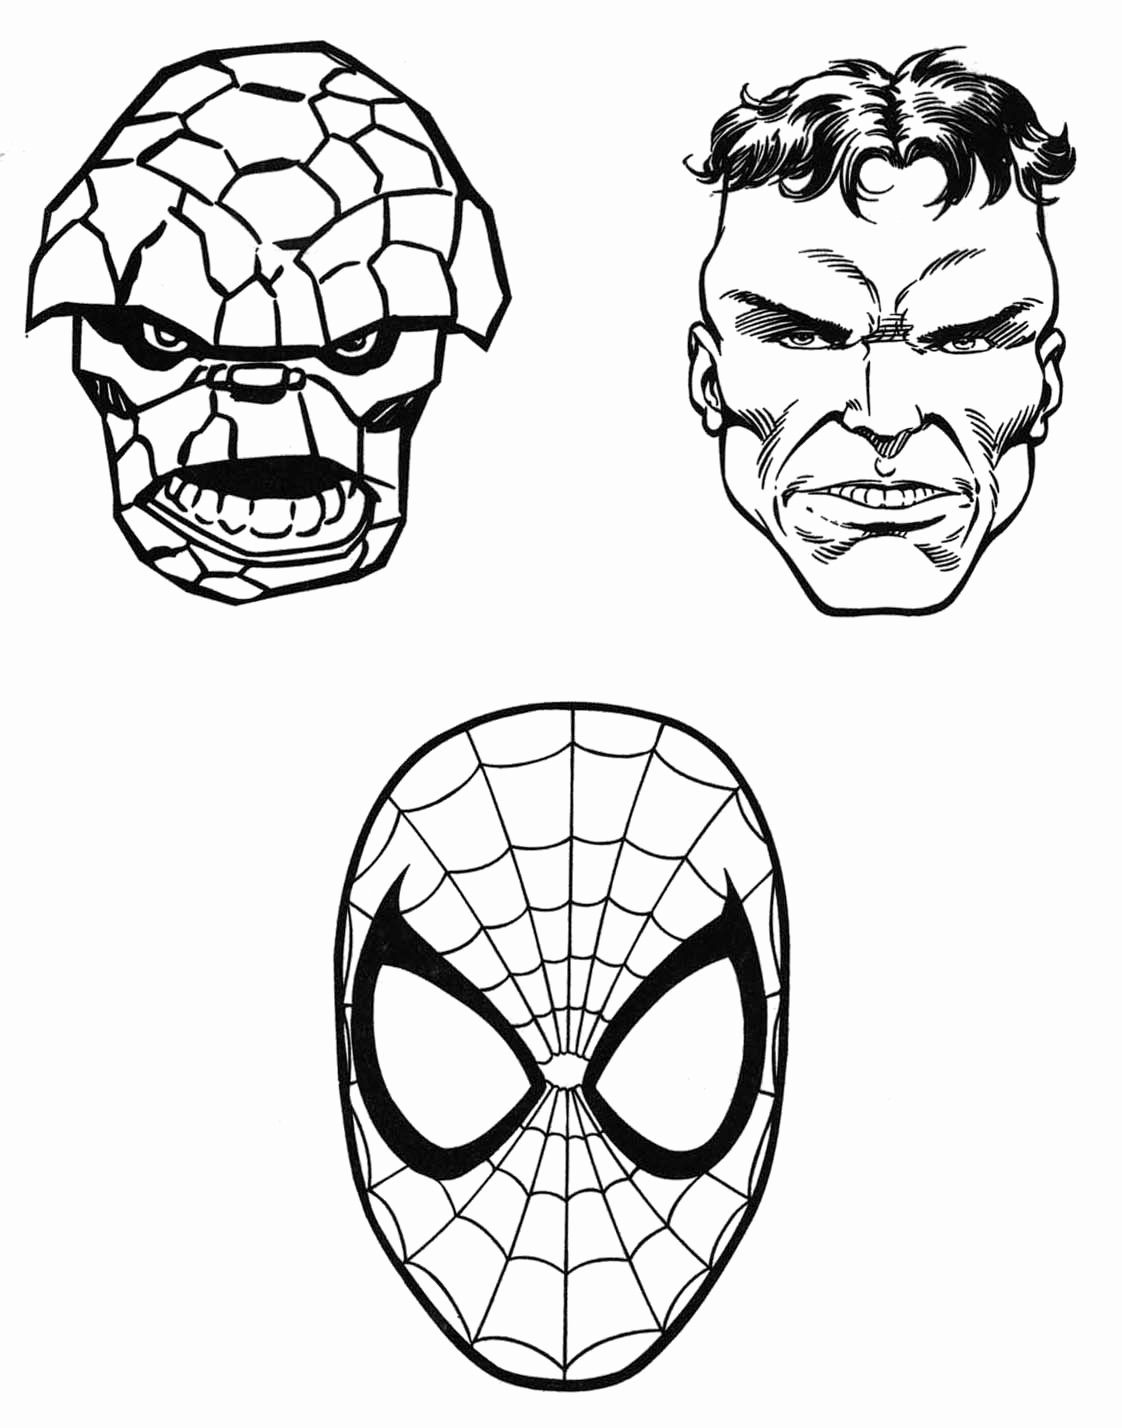 Super Hero Coloring Page Luxury Marvel Coloring Pages Best Coloring Pages for Kids